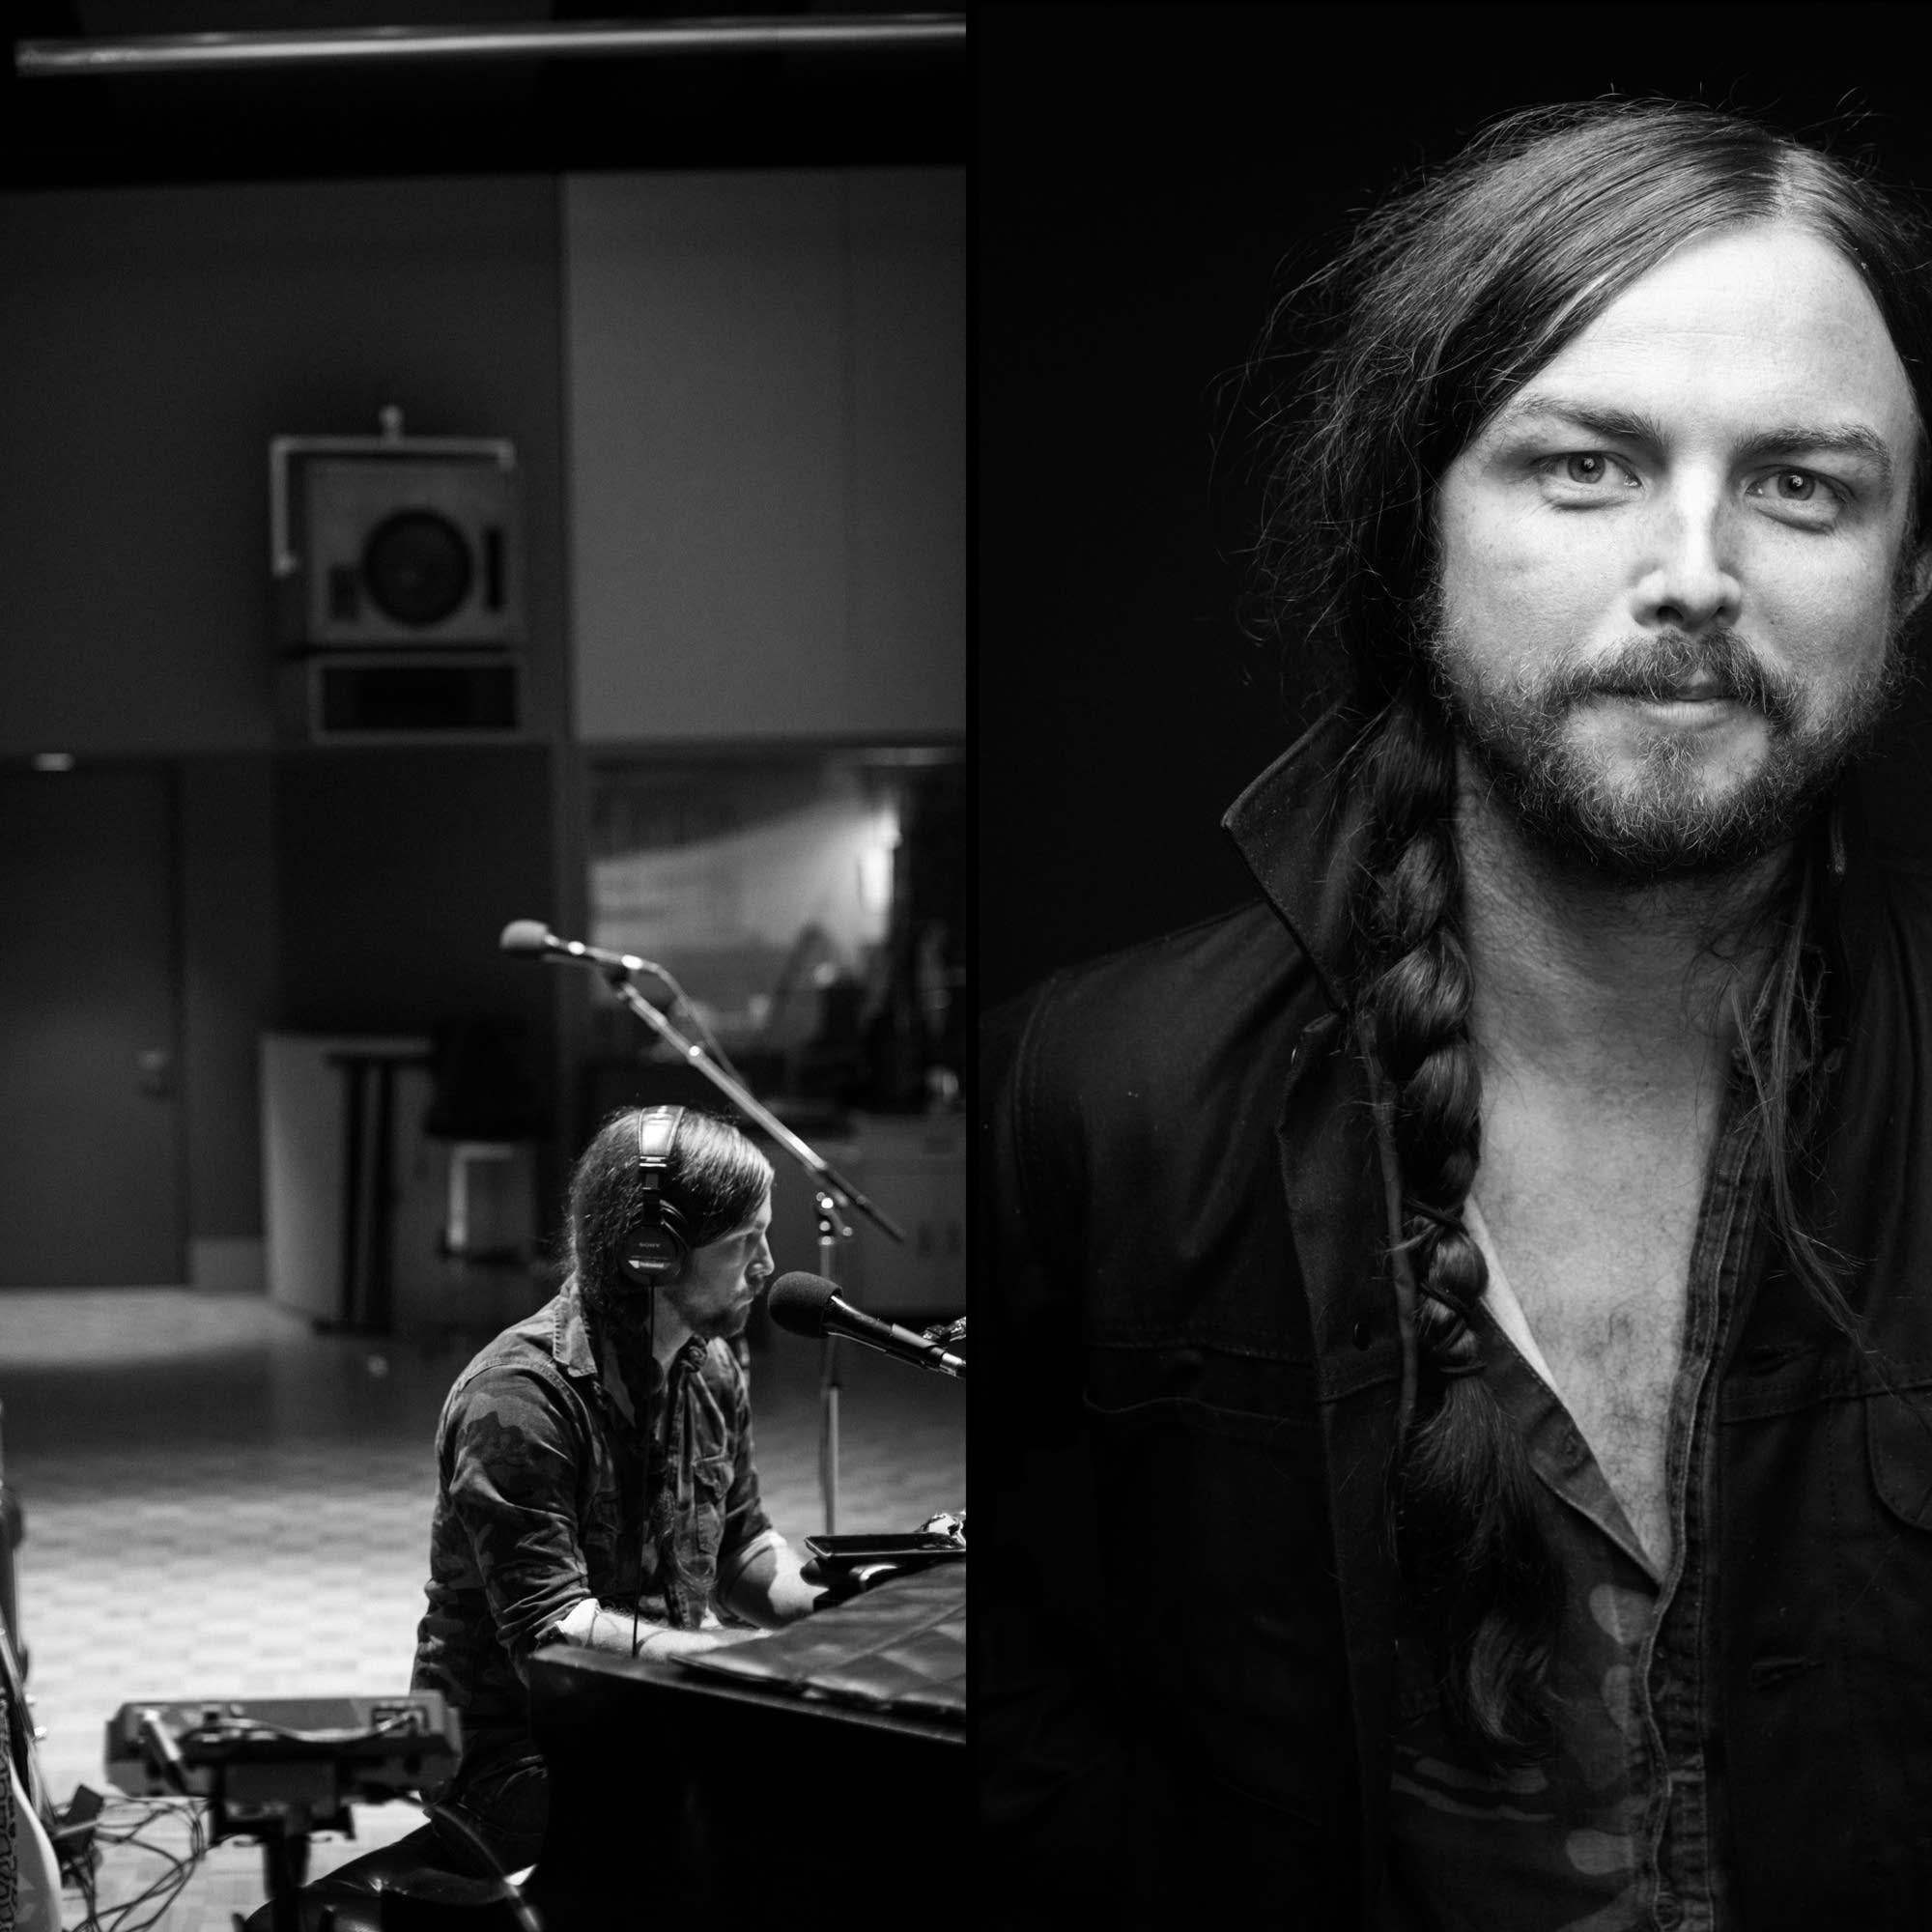 J. Roddy Walston & The Business in studio